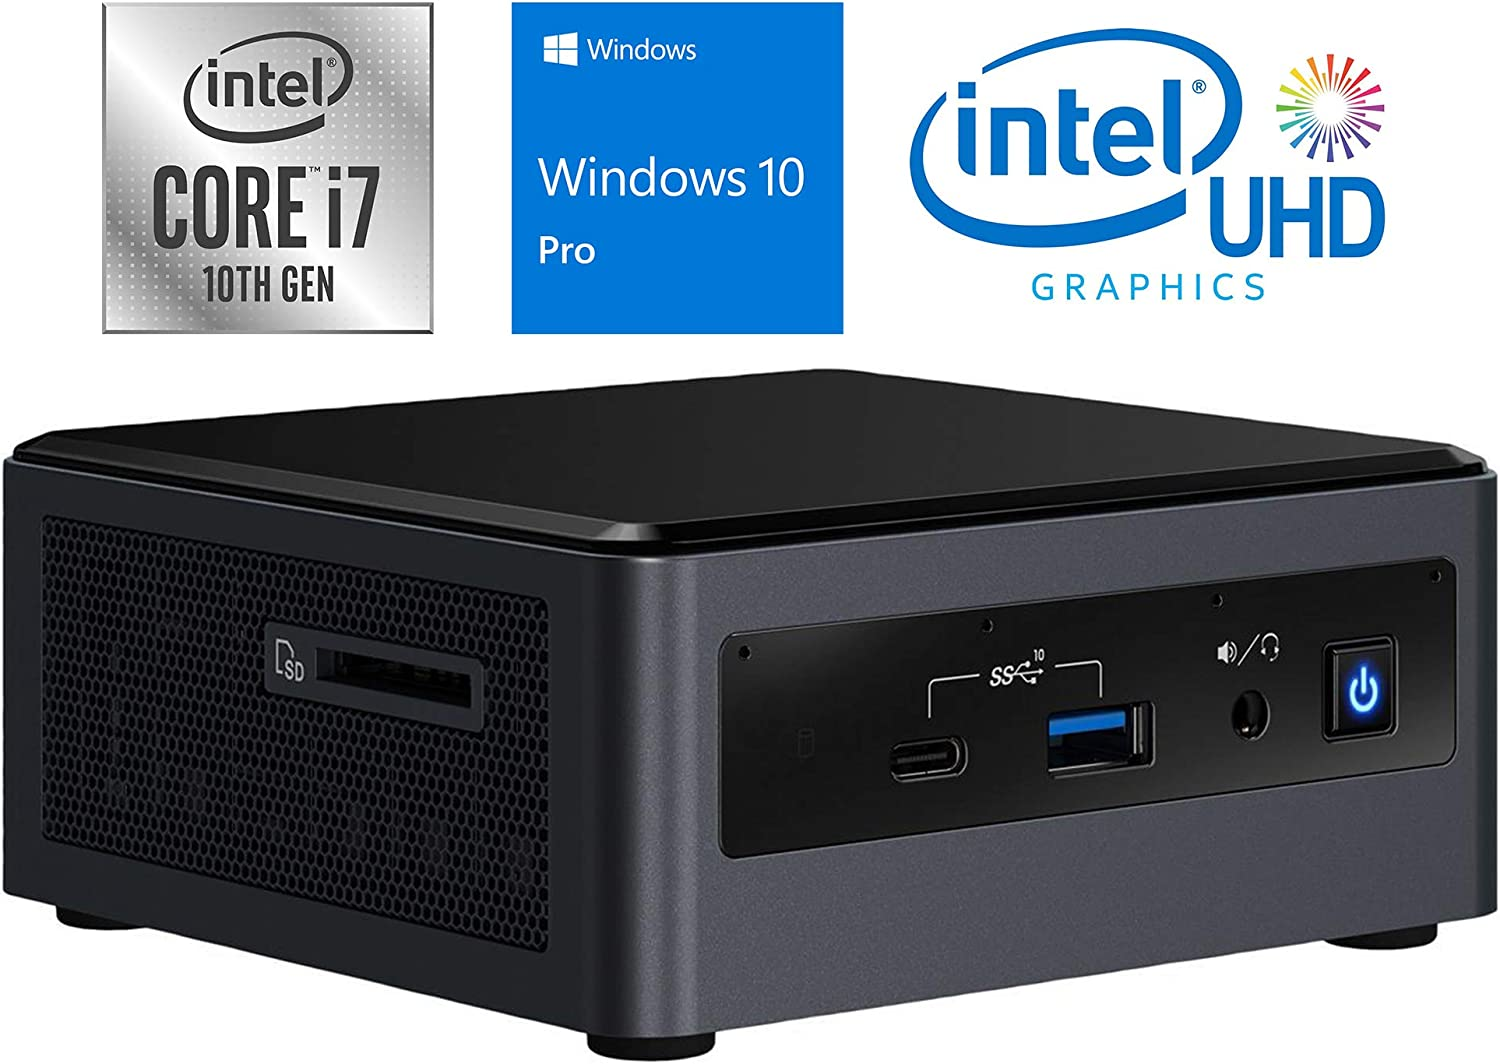 Intel NUC10i7FNH Mini PC, Intel Core i7-10710U Upto 4.7GHz, 32GB RAM, 1TB NVMe SSD + 1TB HDD, HDMI, Thunderbolt, Card Reader, Wi-Fi, Bluetooth, Windows 10 Pro